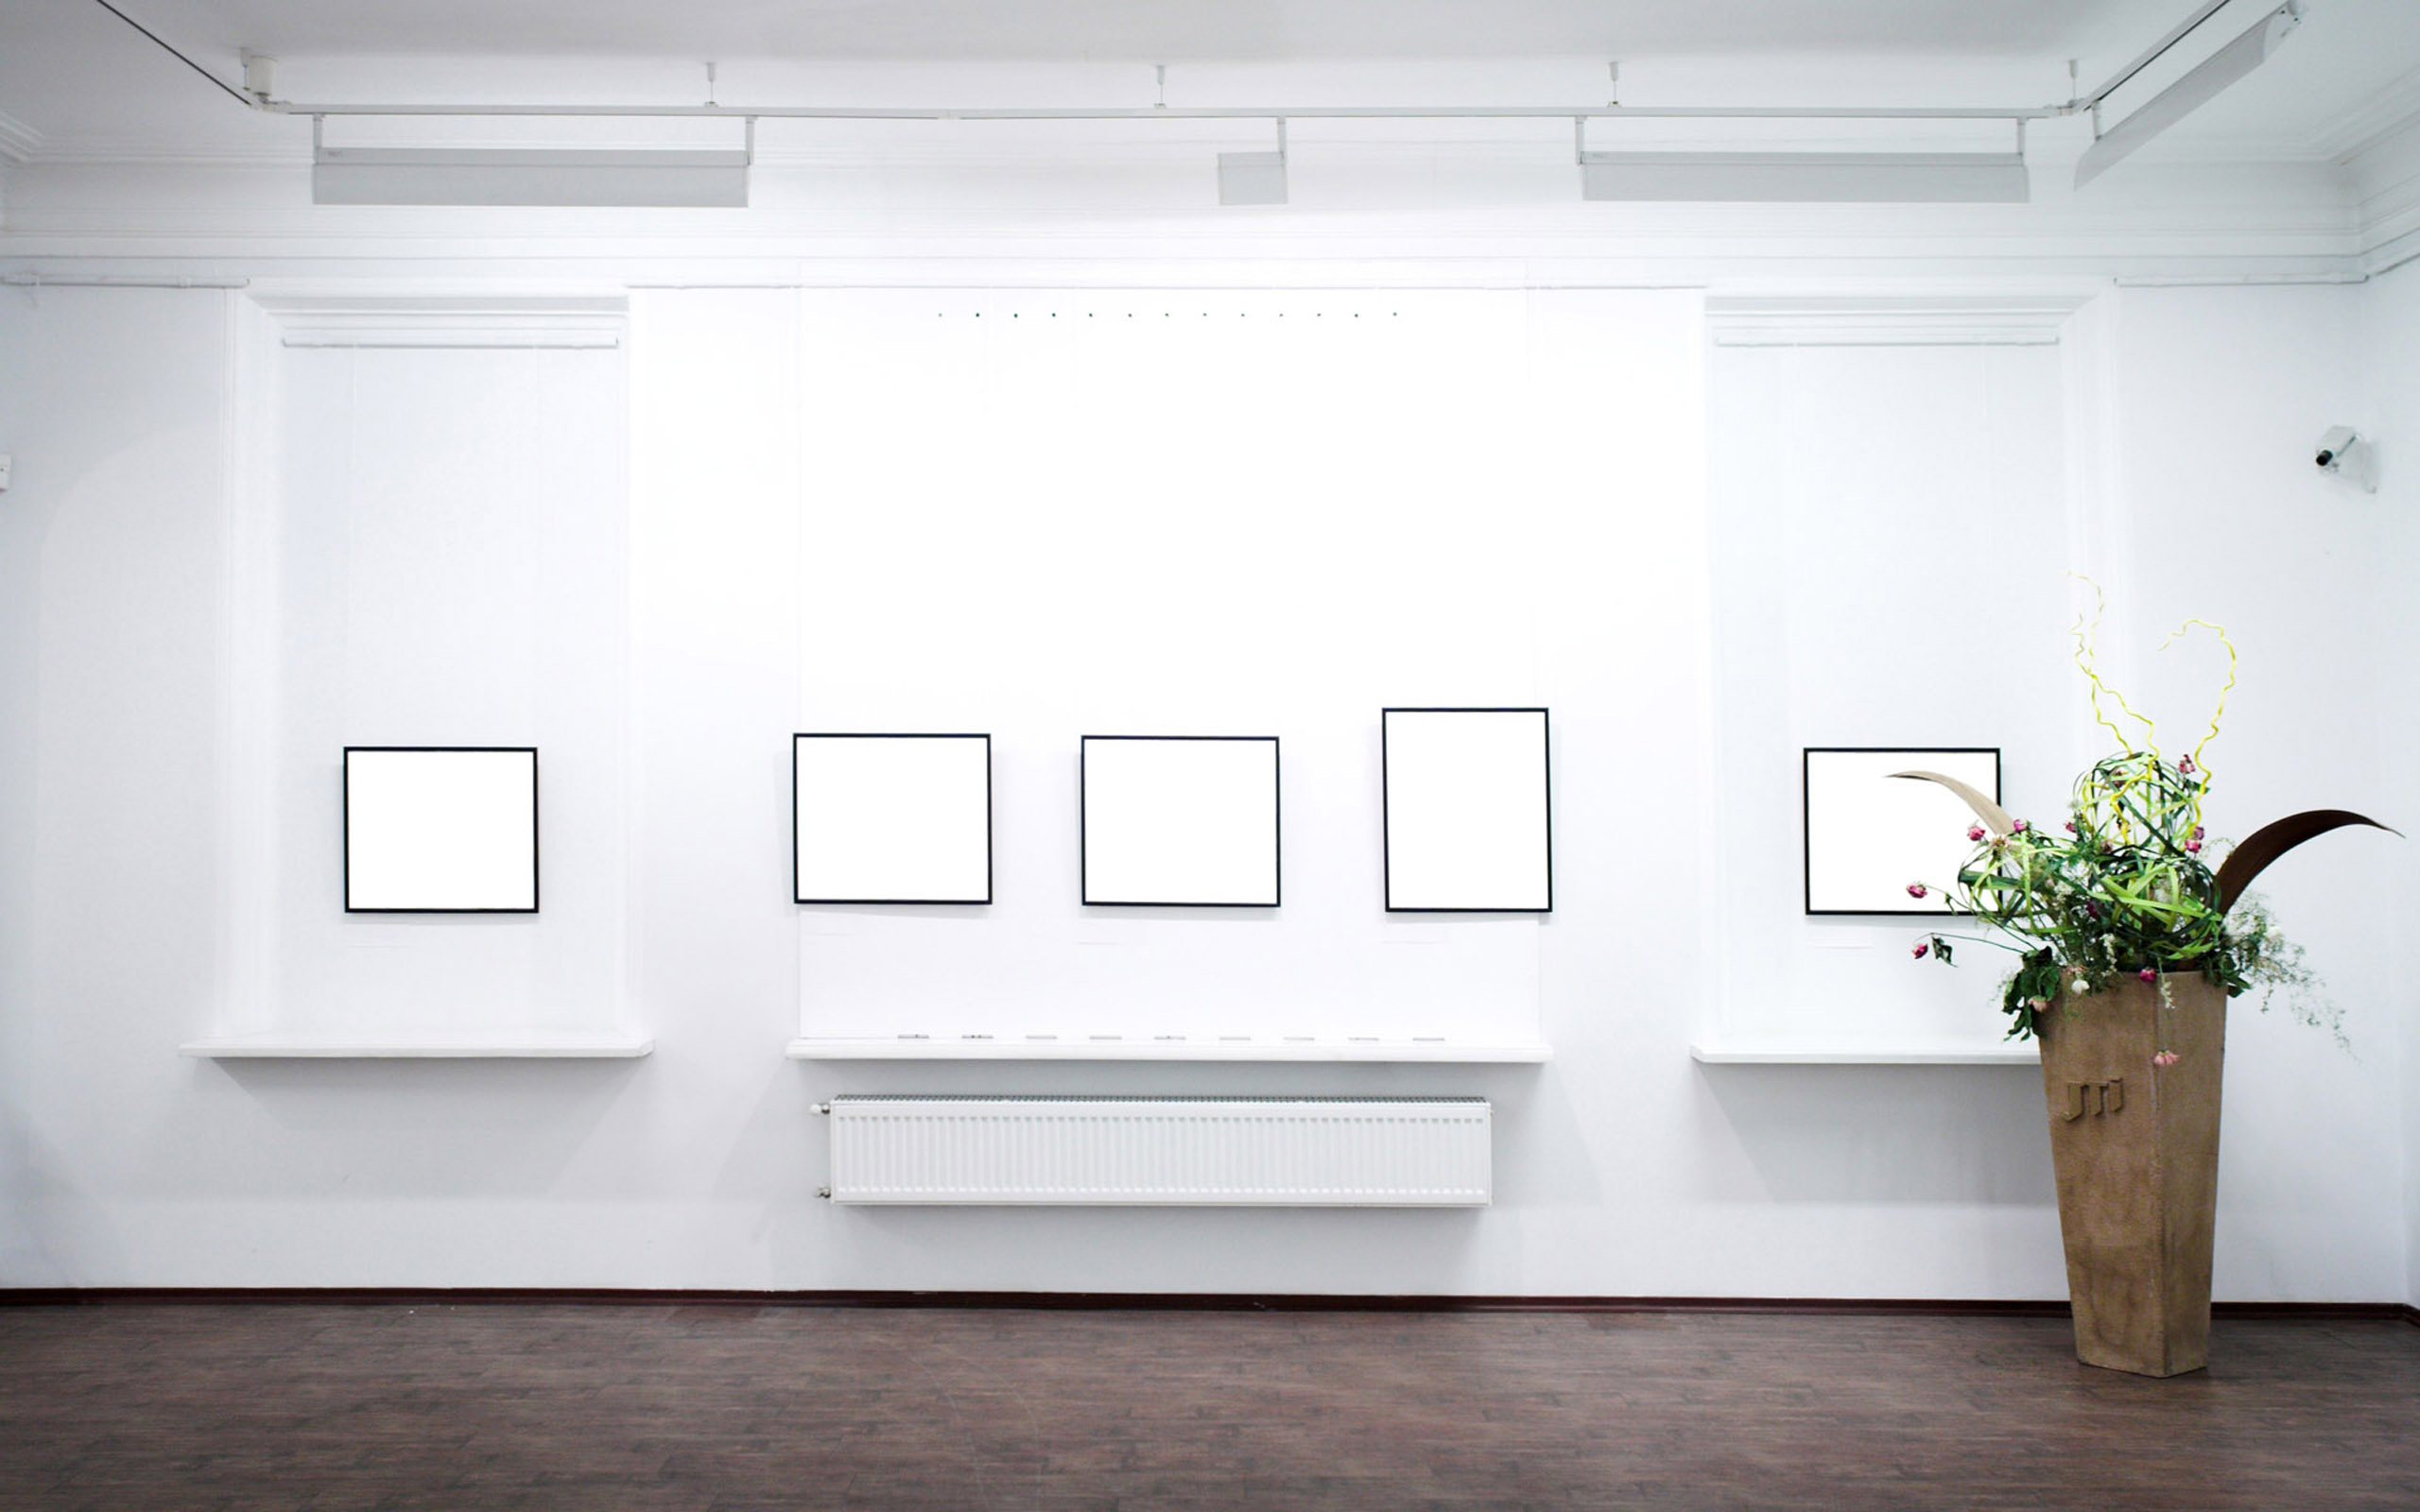 Interior free desktop wallpapers for hd widescreen and for Wallpaper mobile home walls